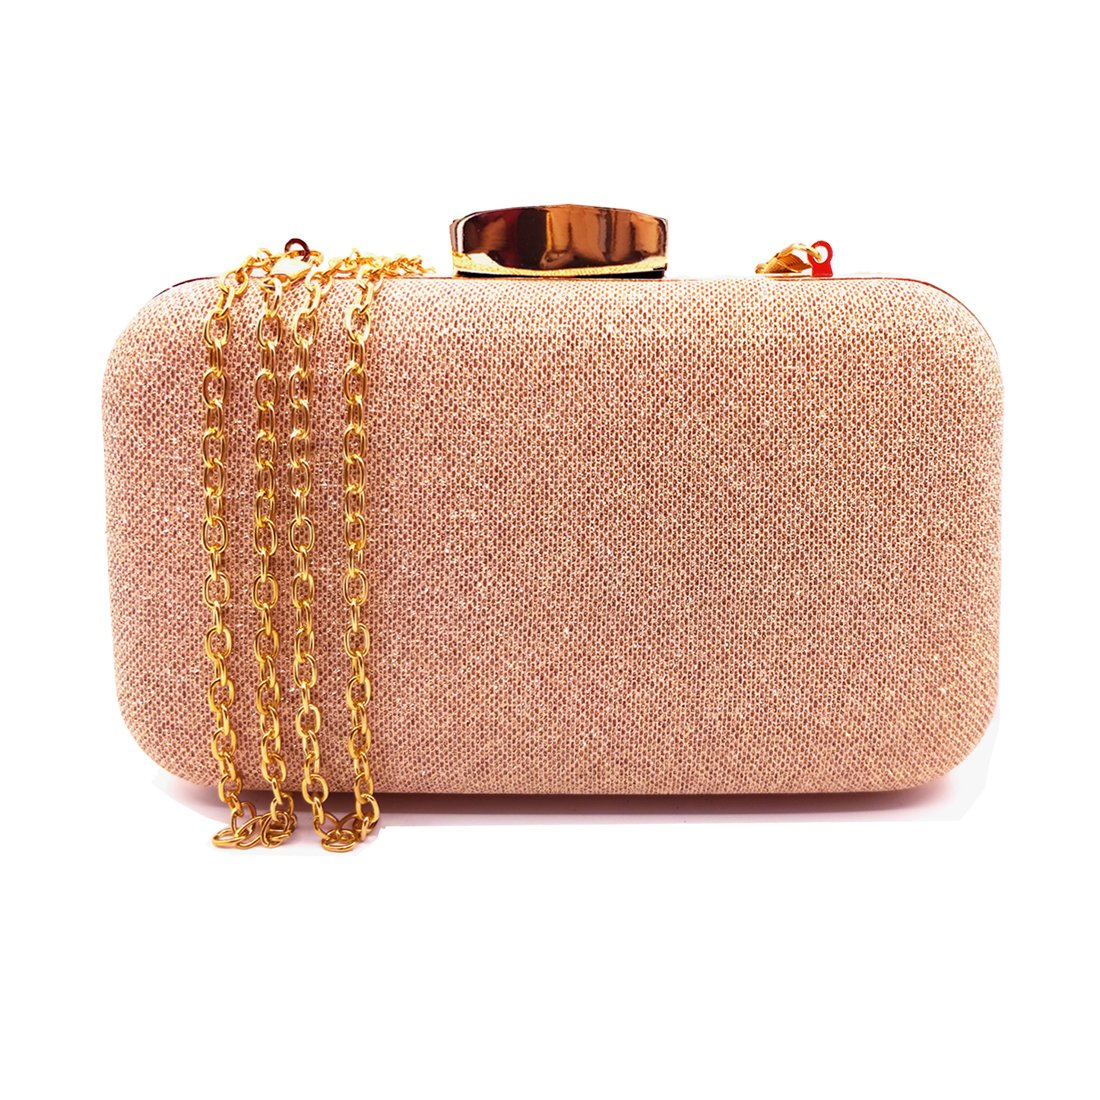 Lxinrong Glitter Evening Clutches Bags Prom Box Clutch Purses Bridal Purse for women Wedding and Party (Rose Gold)